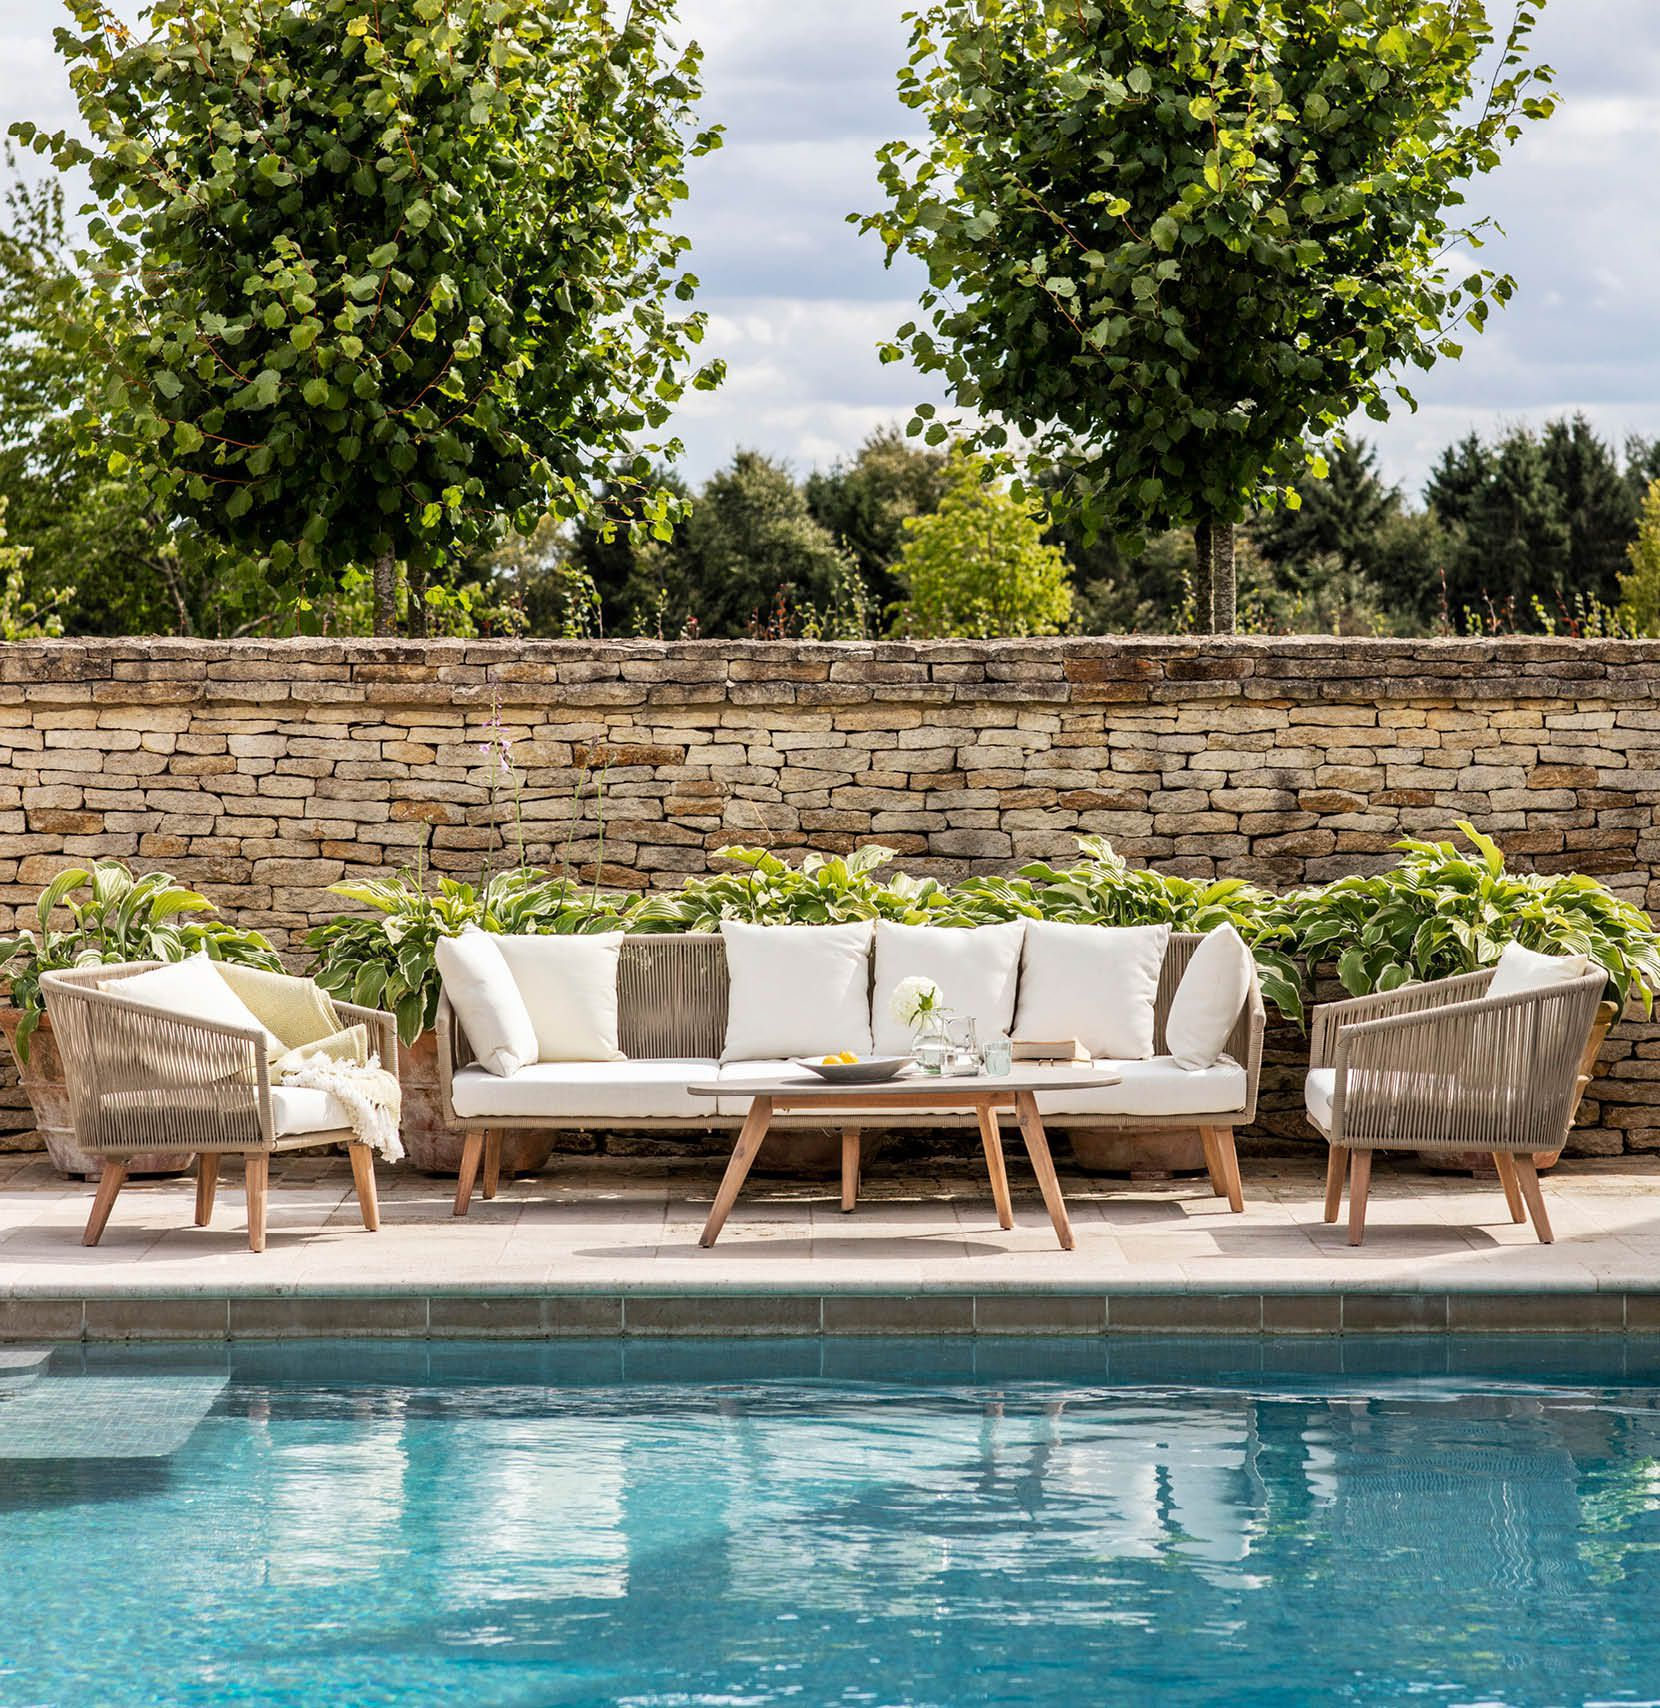 Colwell sofa set with armchair table in garden next to swimming pool